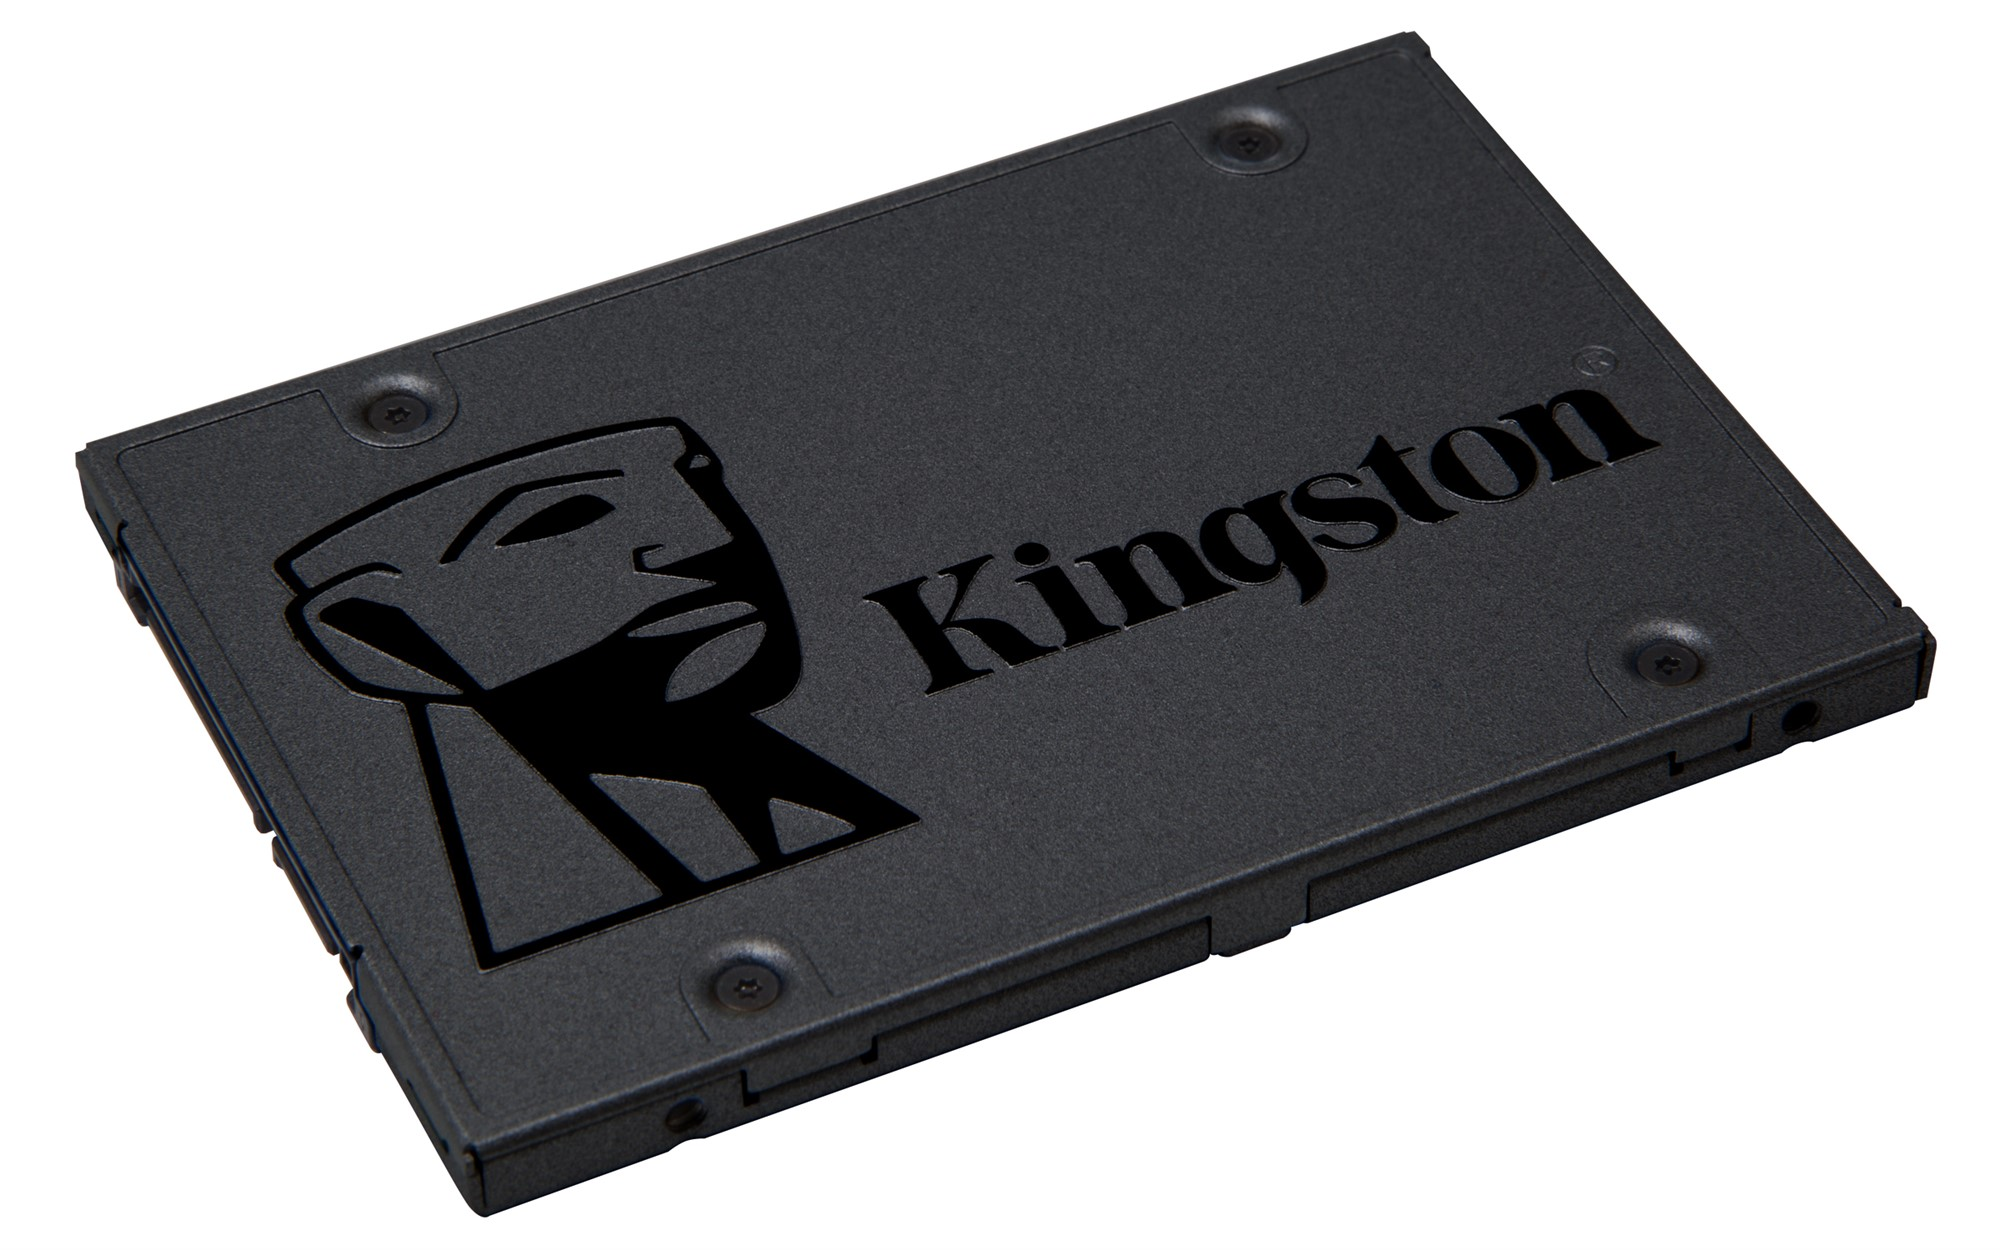 KINGSTON A400 SSD 120GB 2.5